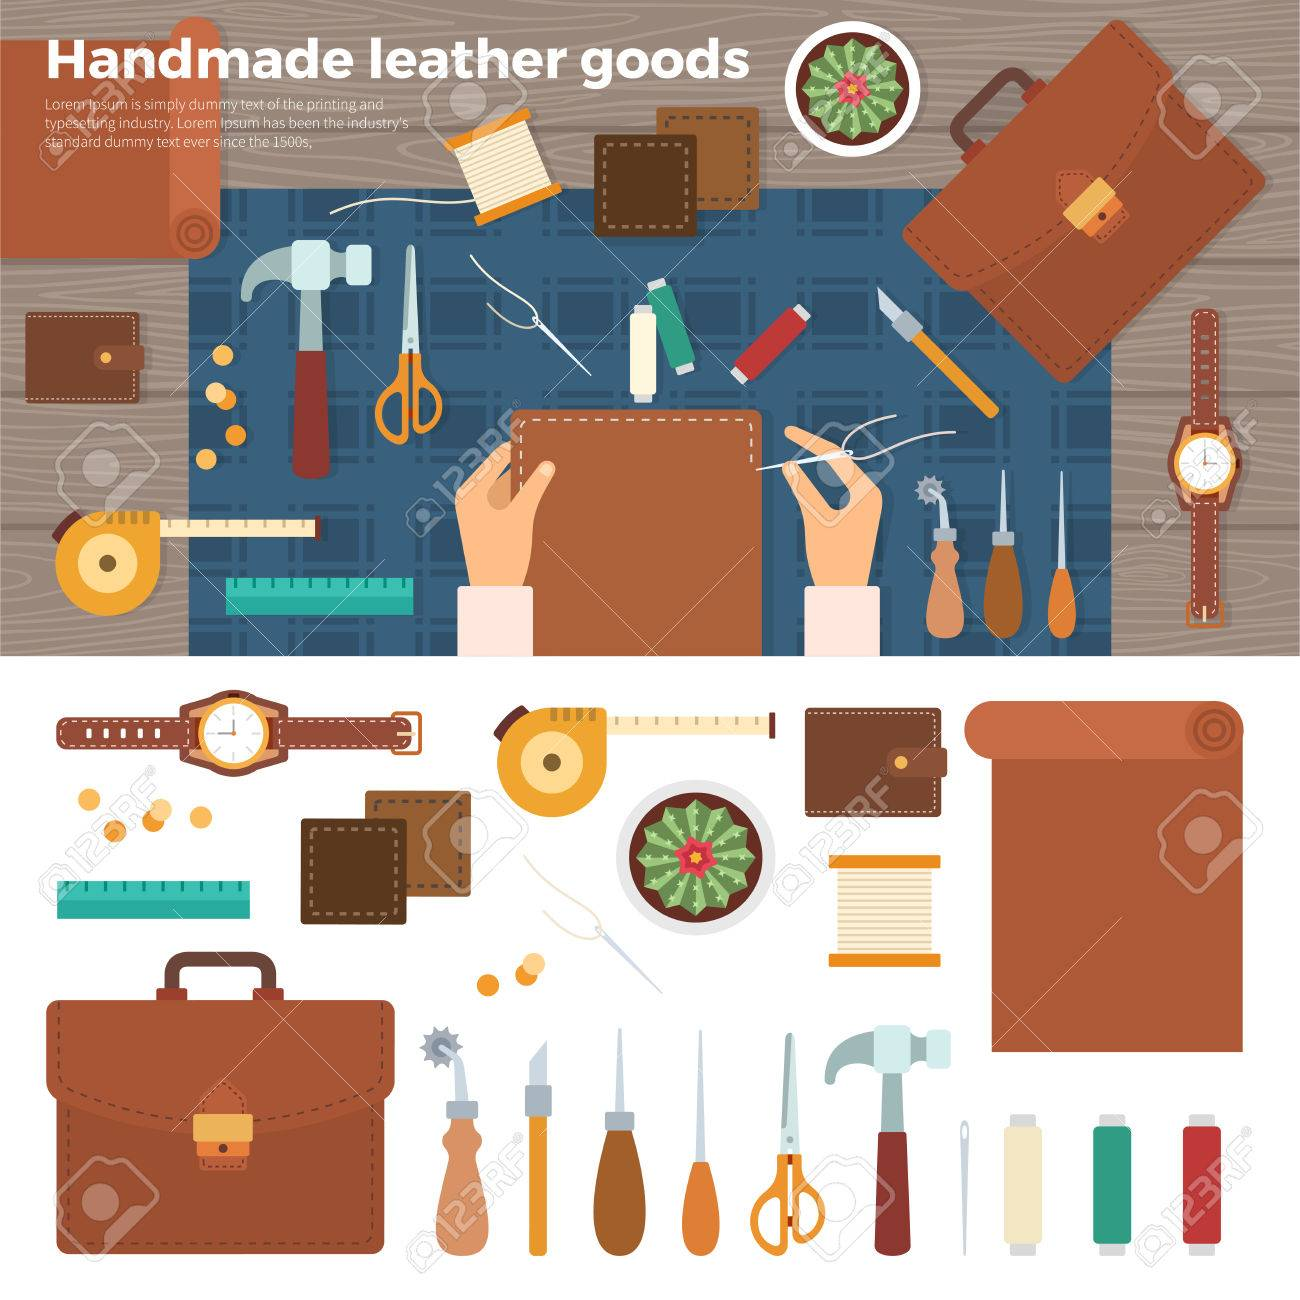 Workplace for leather goods. Table with tools and working furrier hands mit nadel. Top view. For website construction, mobile applications, banners, corporate brochures, book covers, layouts - 56712328